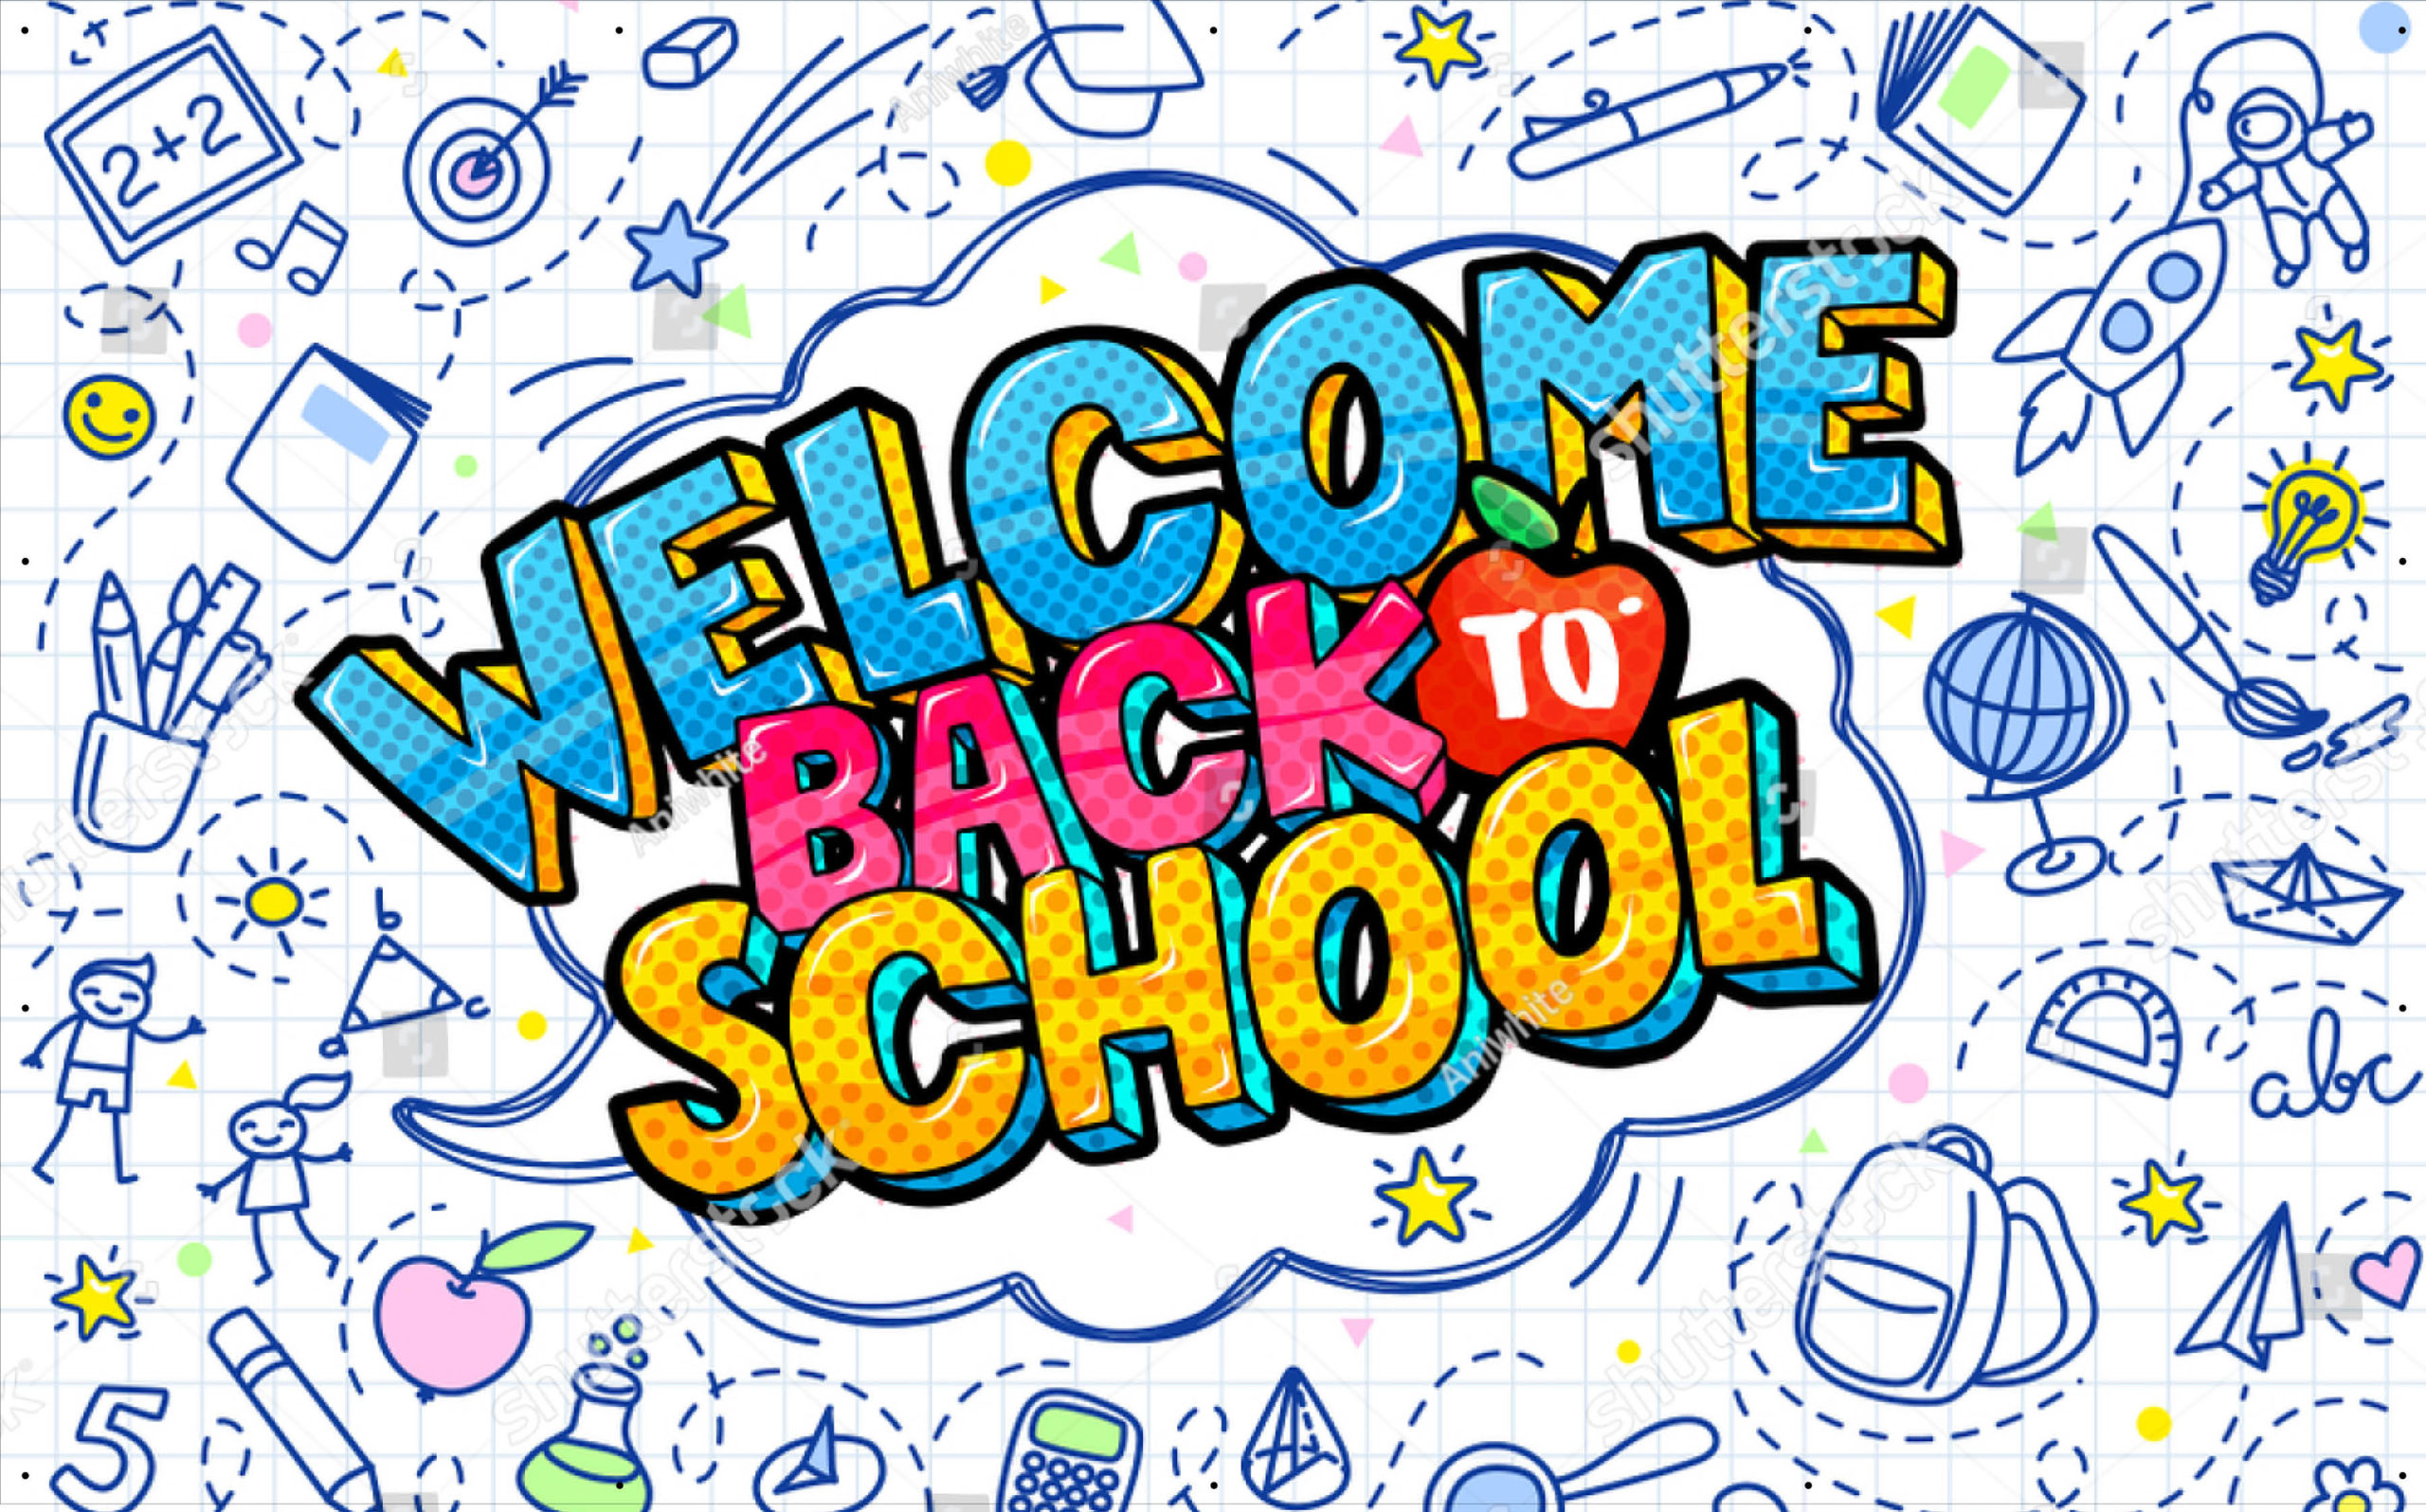 WelcomBack 8x4 good6 scaled Schools and colleges    Image of WelcomBack 8x4 good6 scaled